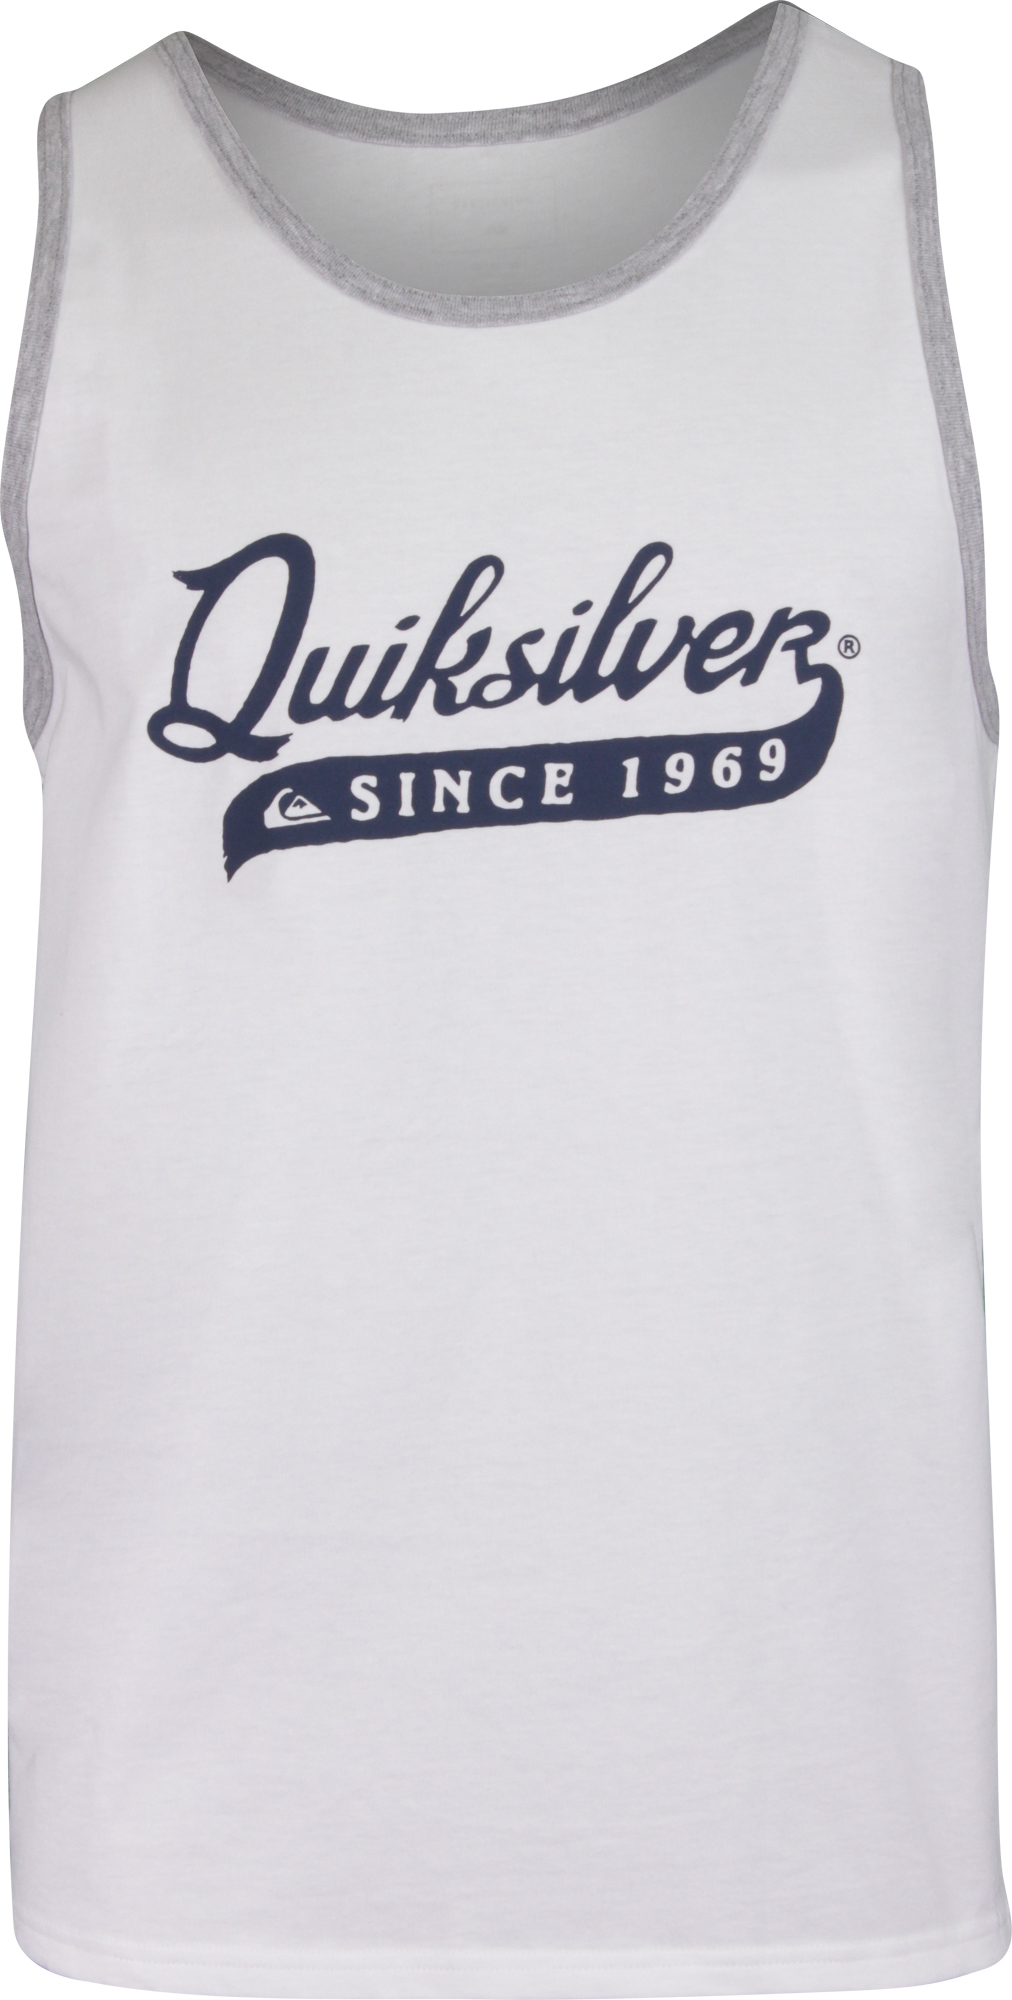 Details about Quiksilver Mens Edgy Tank Top - White 3db97642ba7